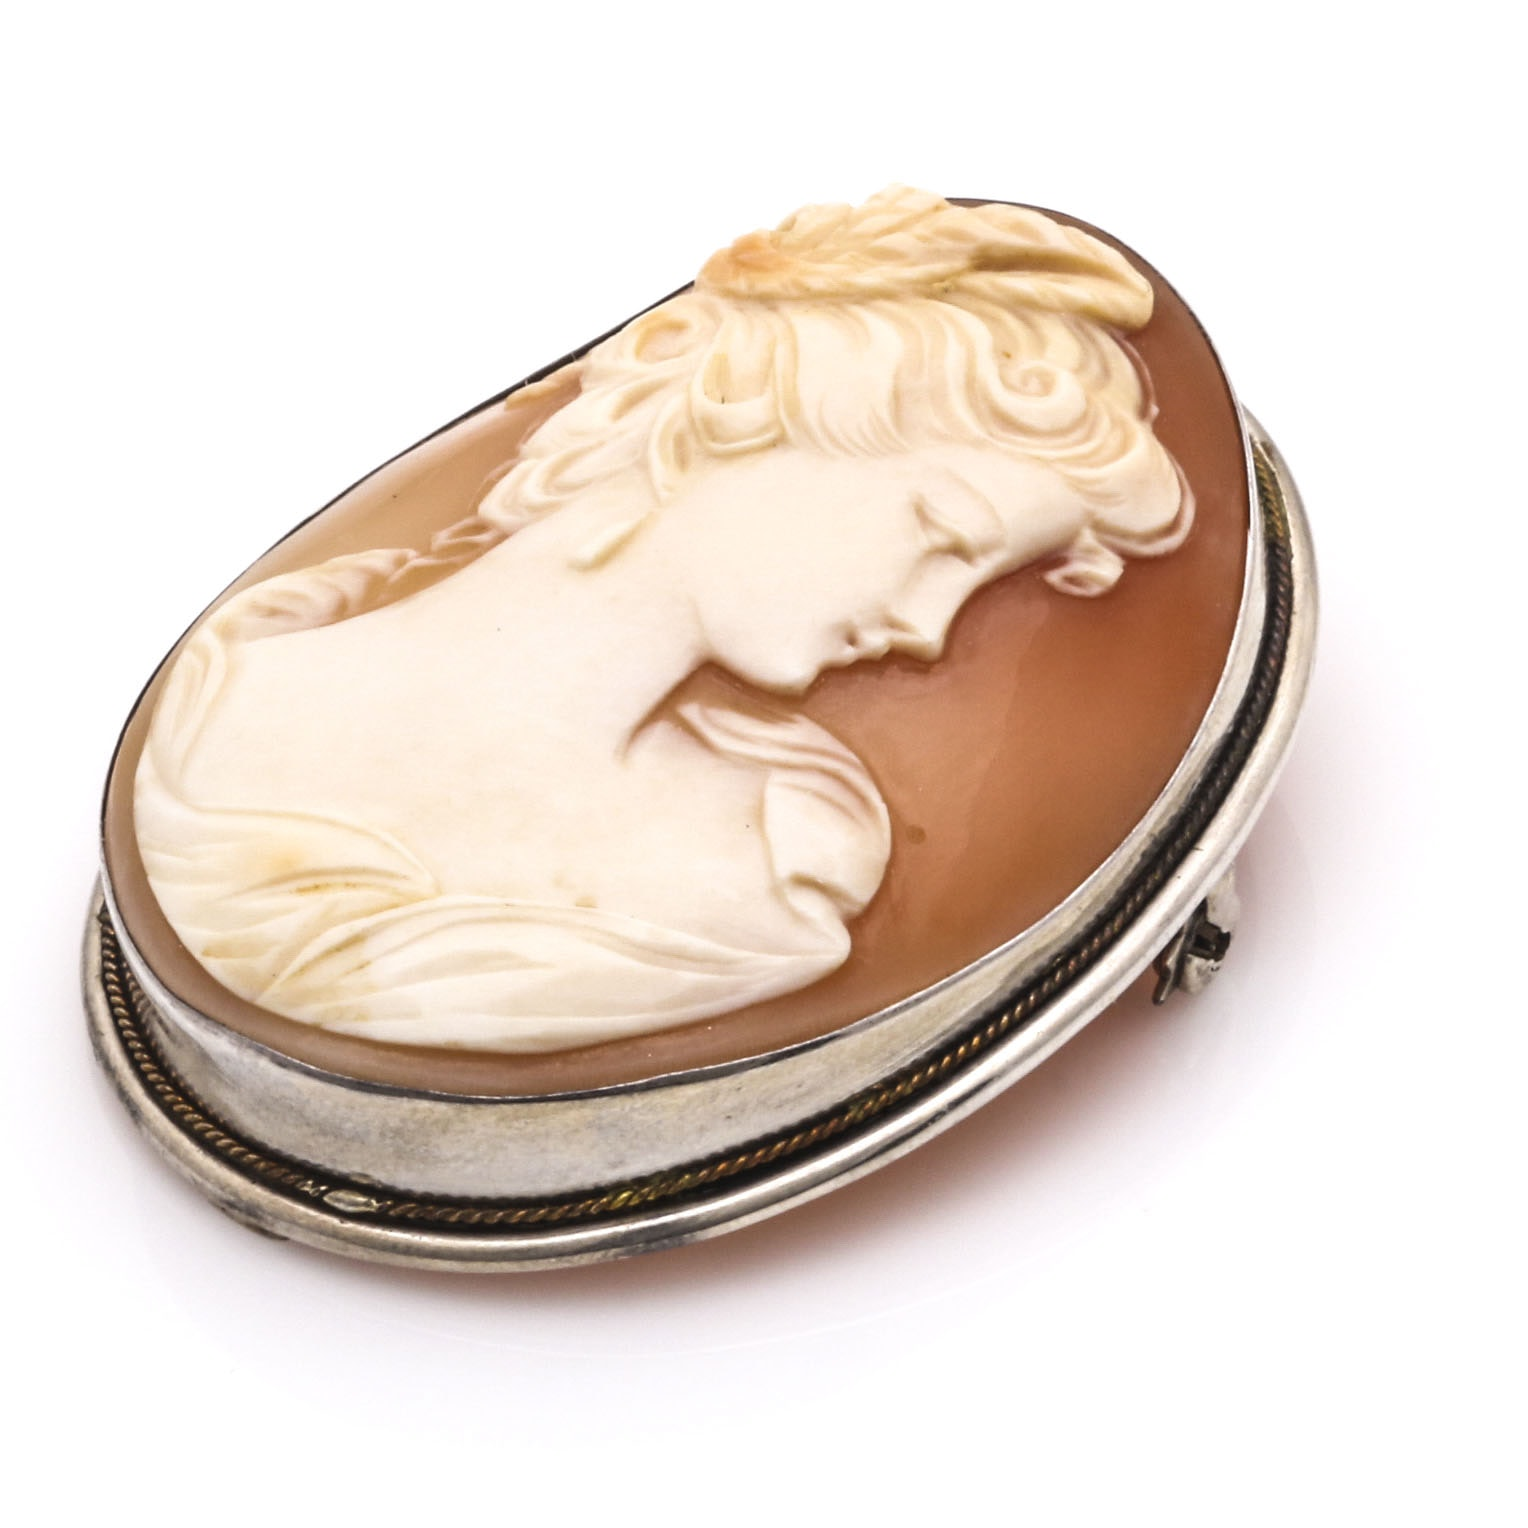 900 Stamped Silver Cameo Pendant Brooch